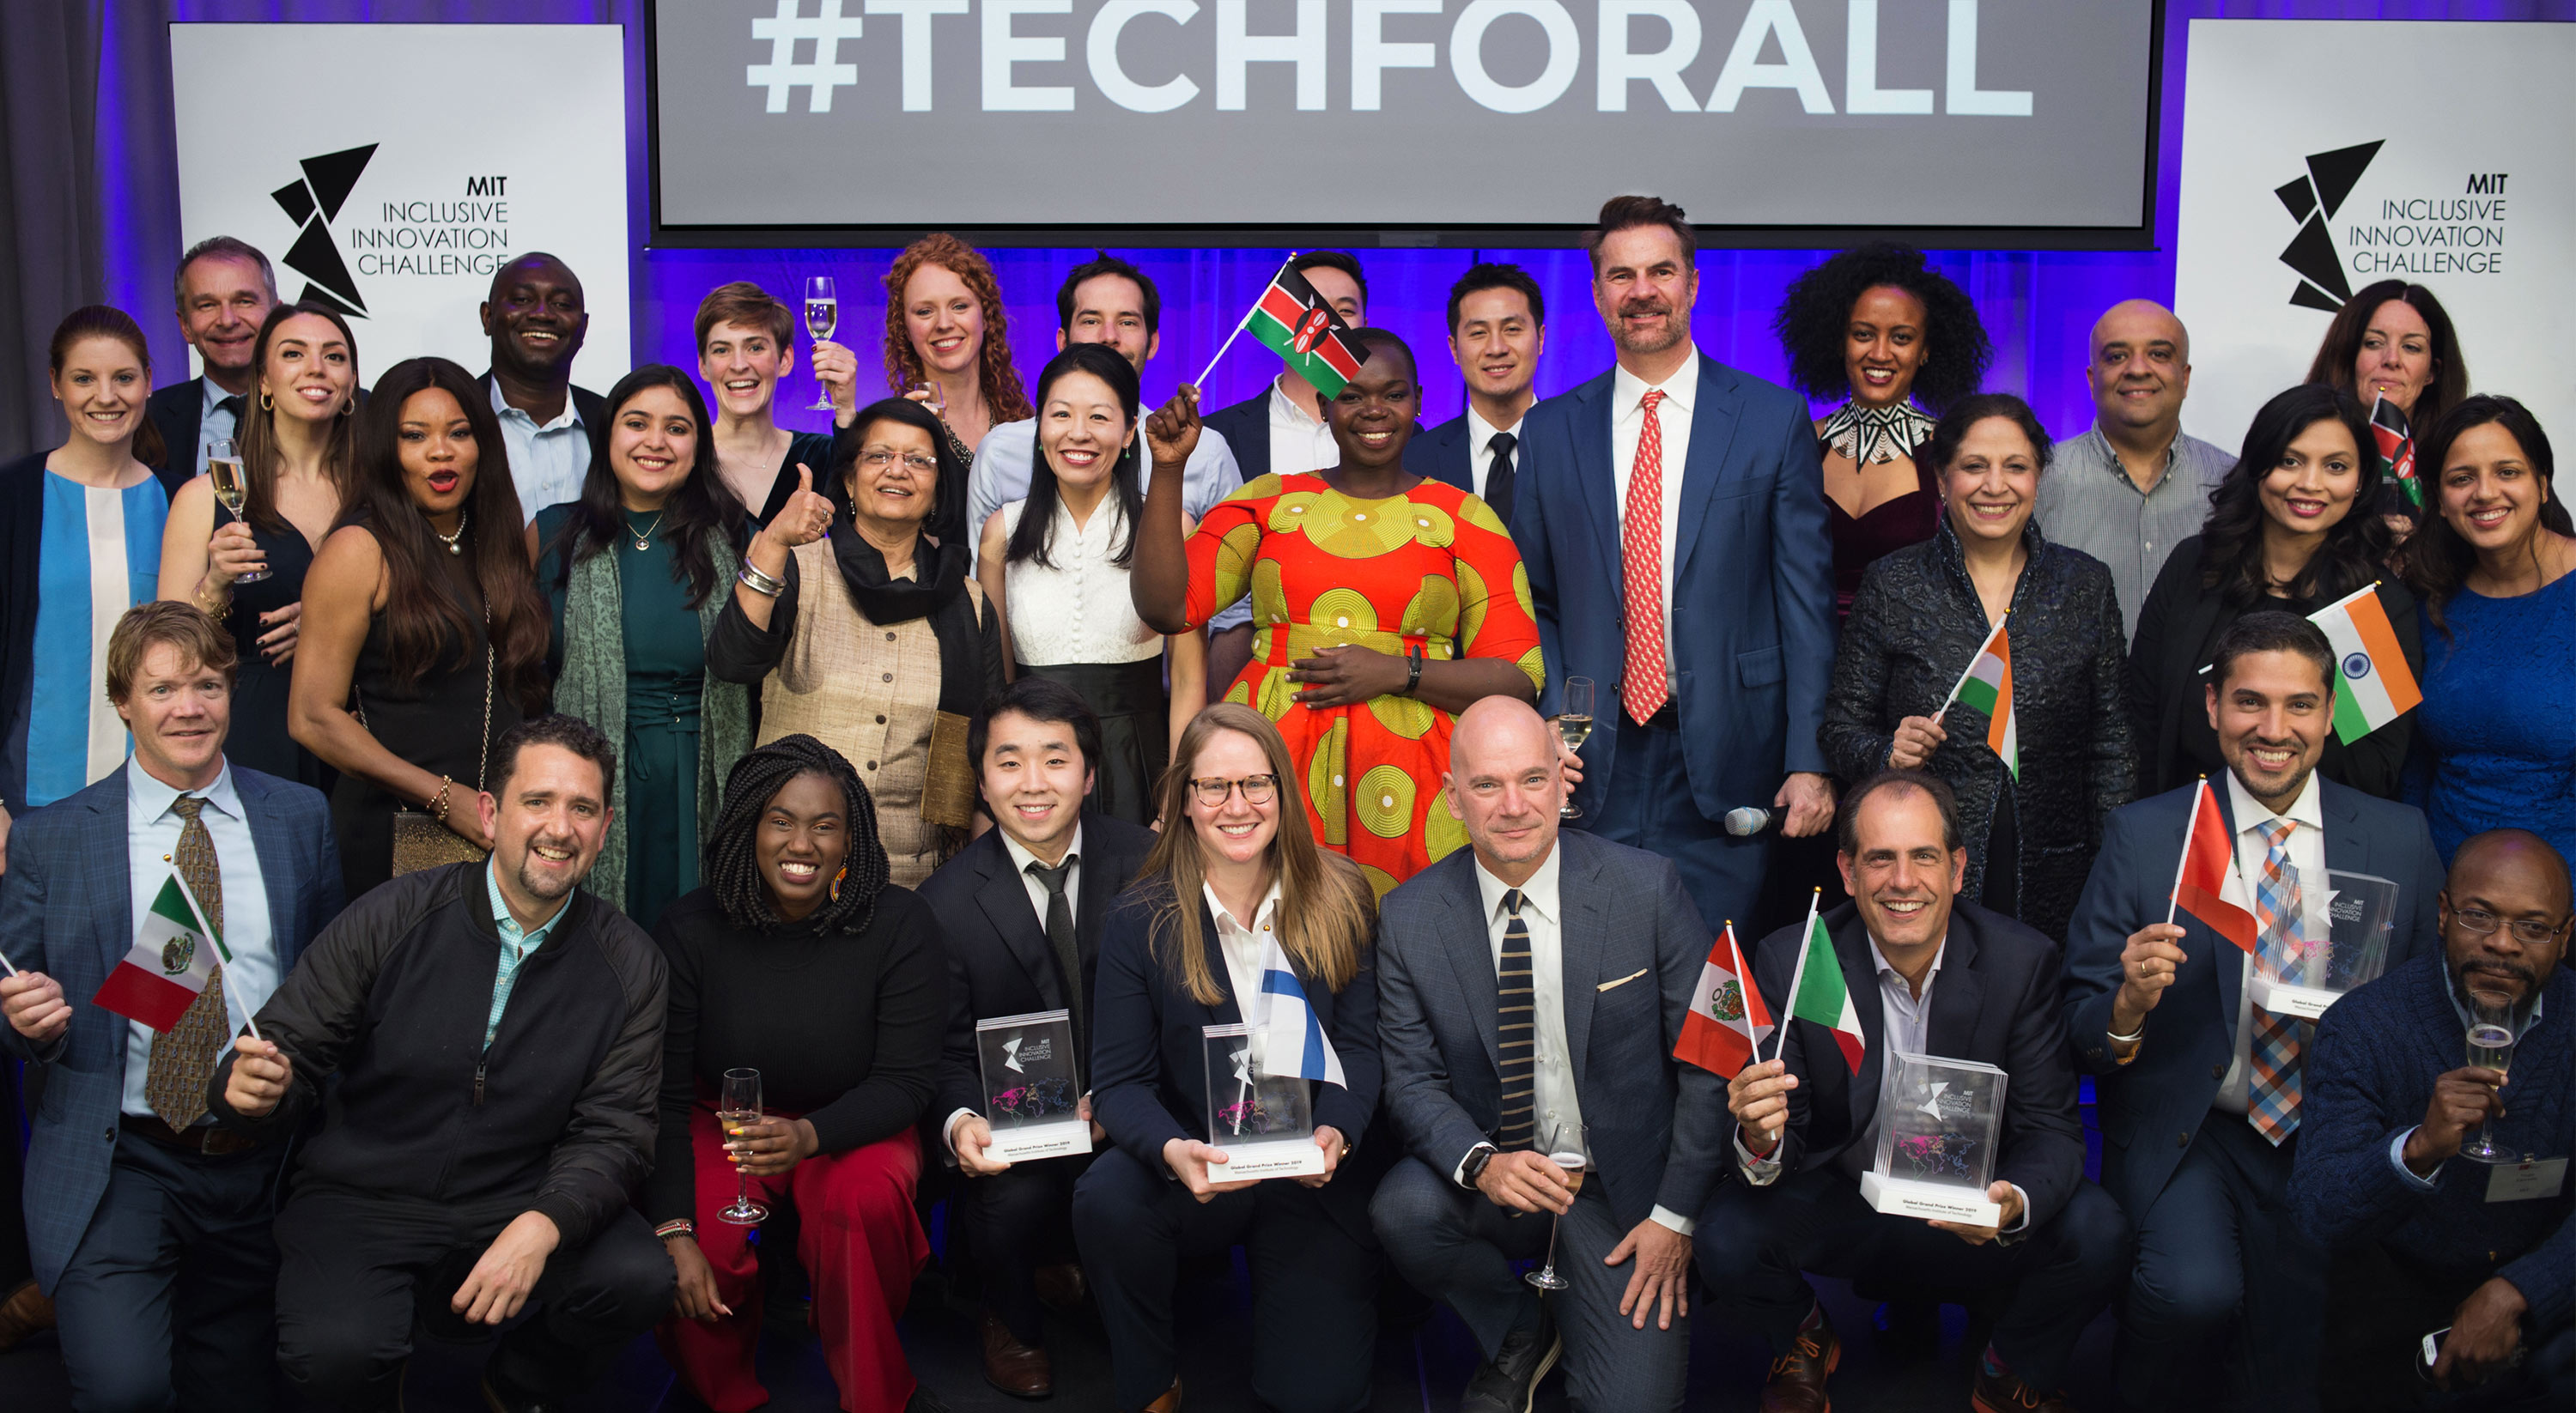 Winners of MIT Inclusive Innovation Challenge